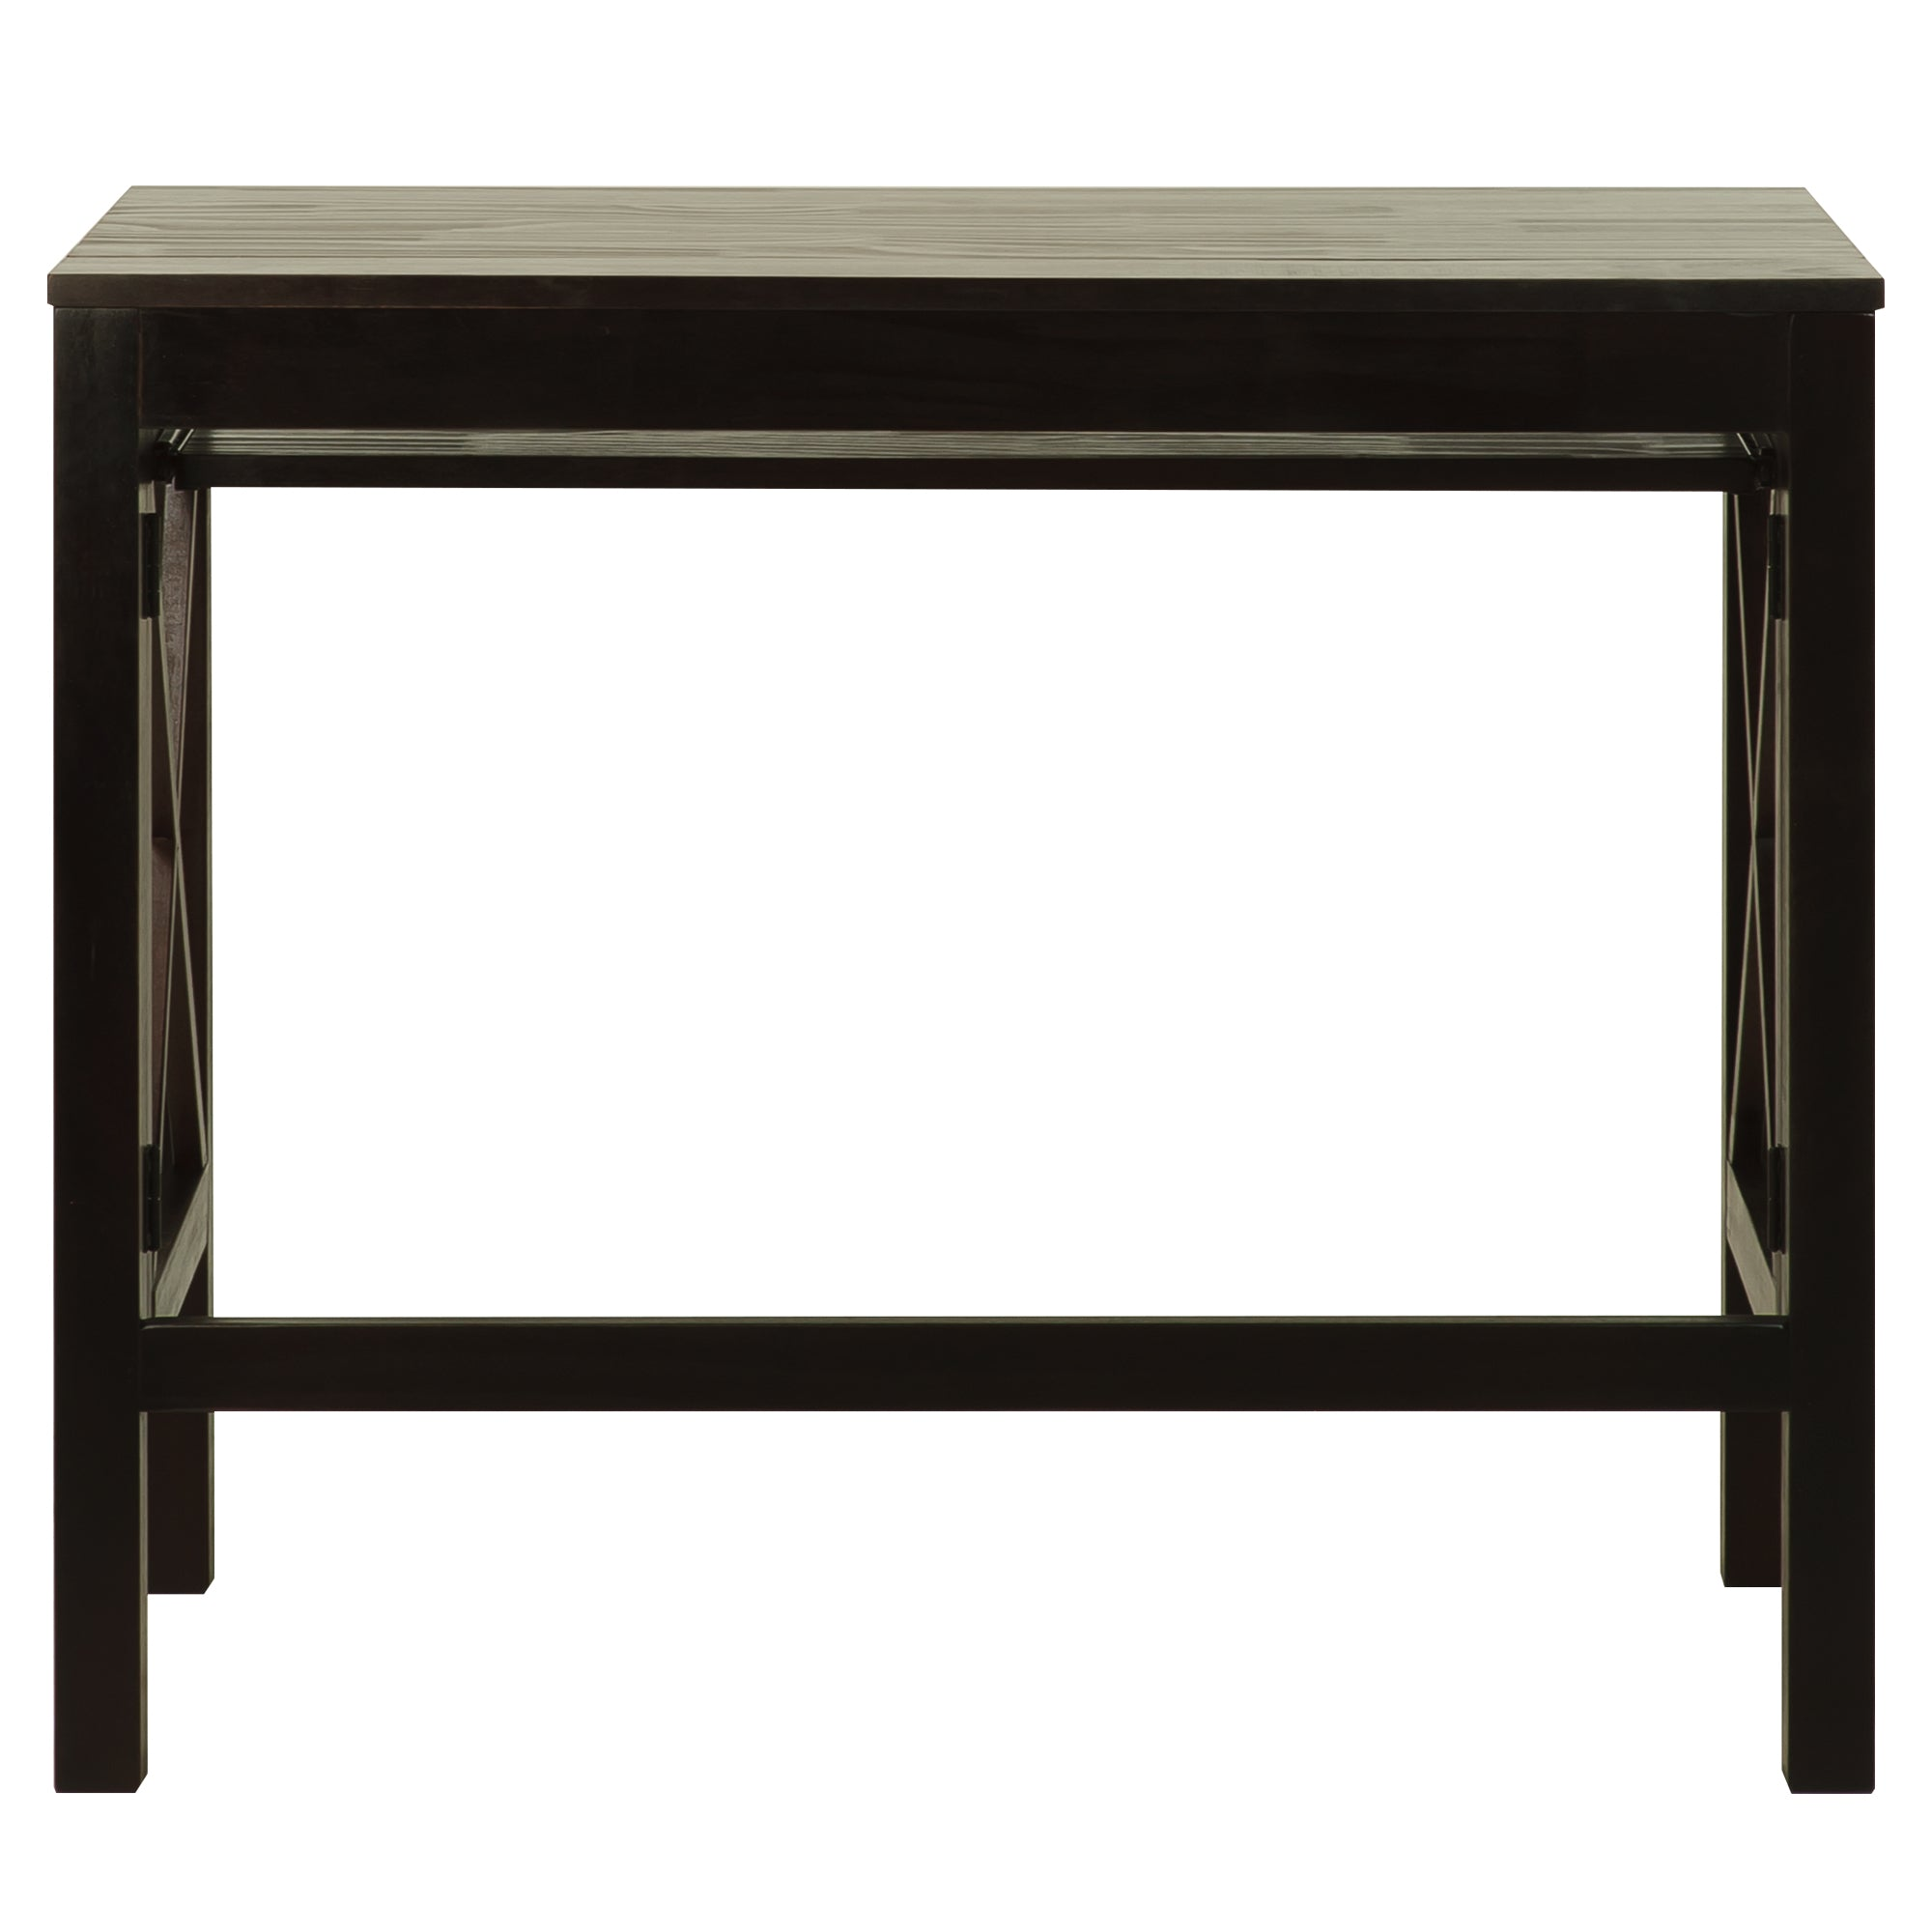 Montego Folding Desk with Pull-Out-Espresso